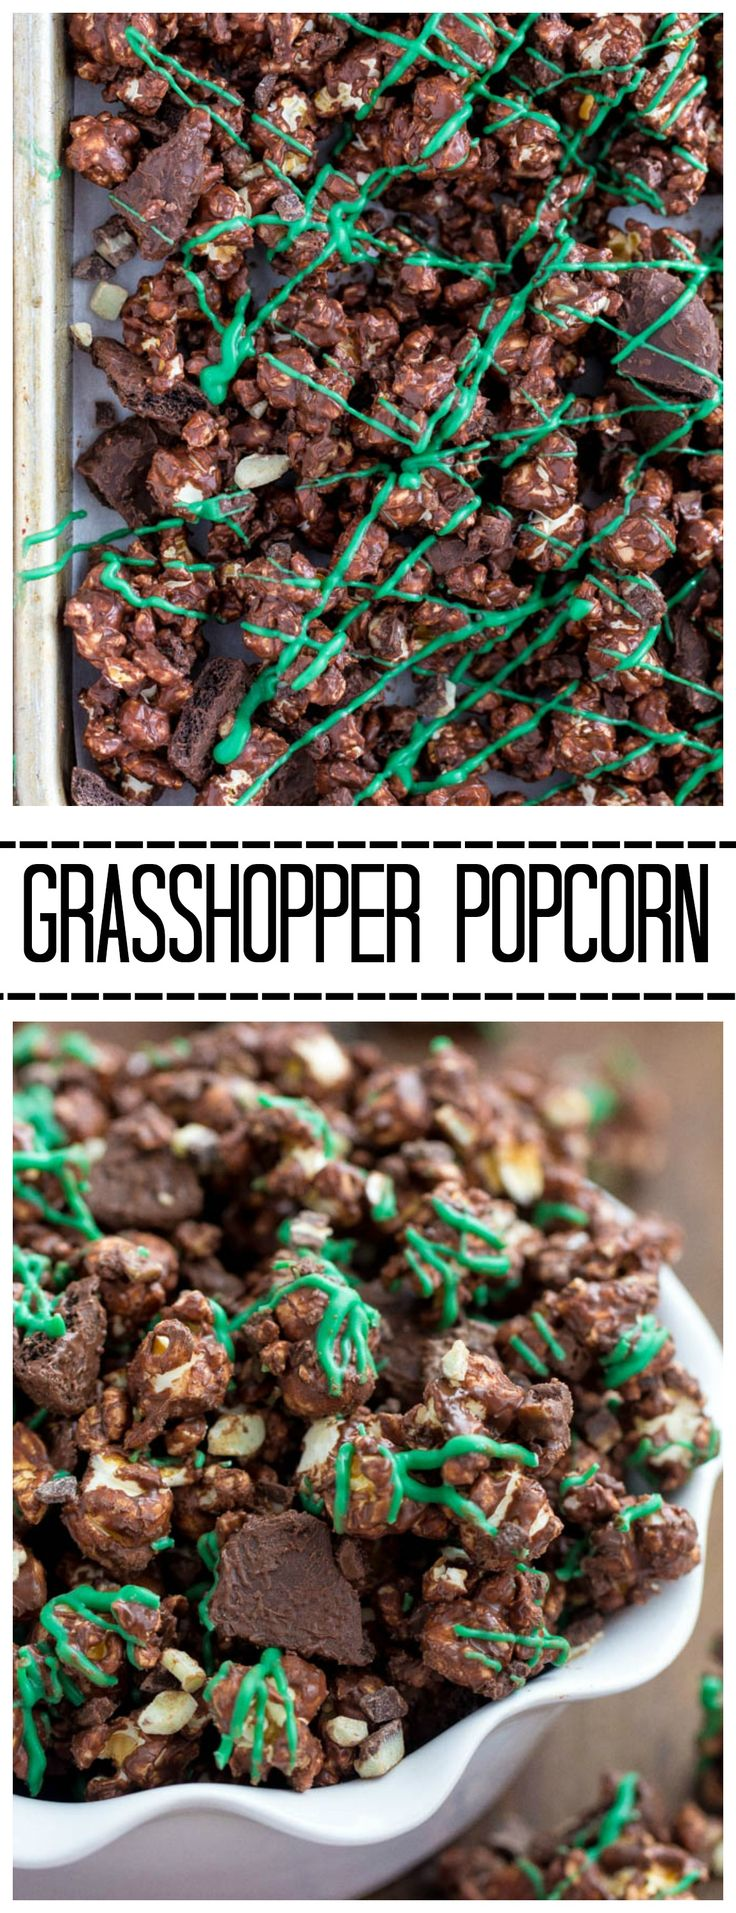 This Grasshopper Popcorn is covered on chocolate and has andes mints and grasshopper cookies hidden inside! It is awesome!